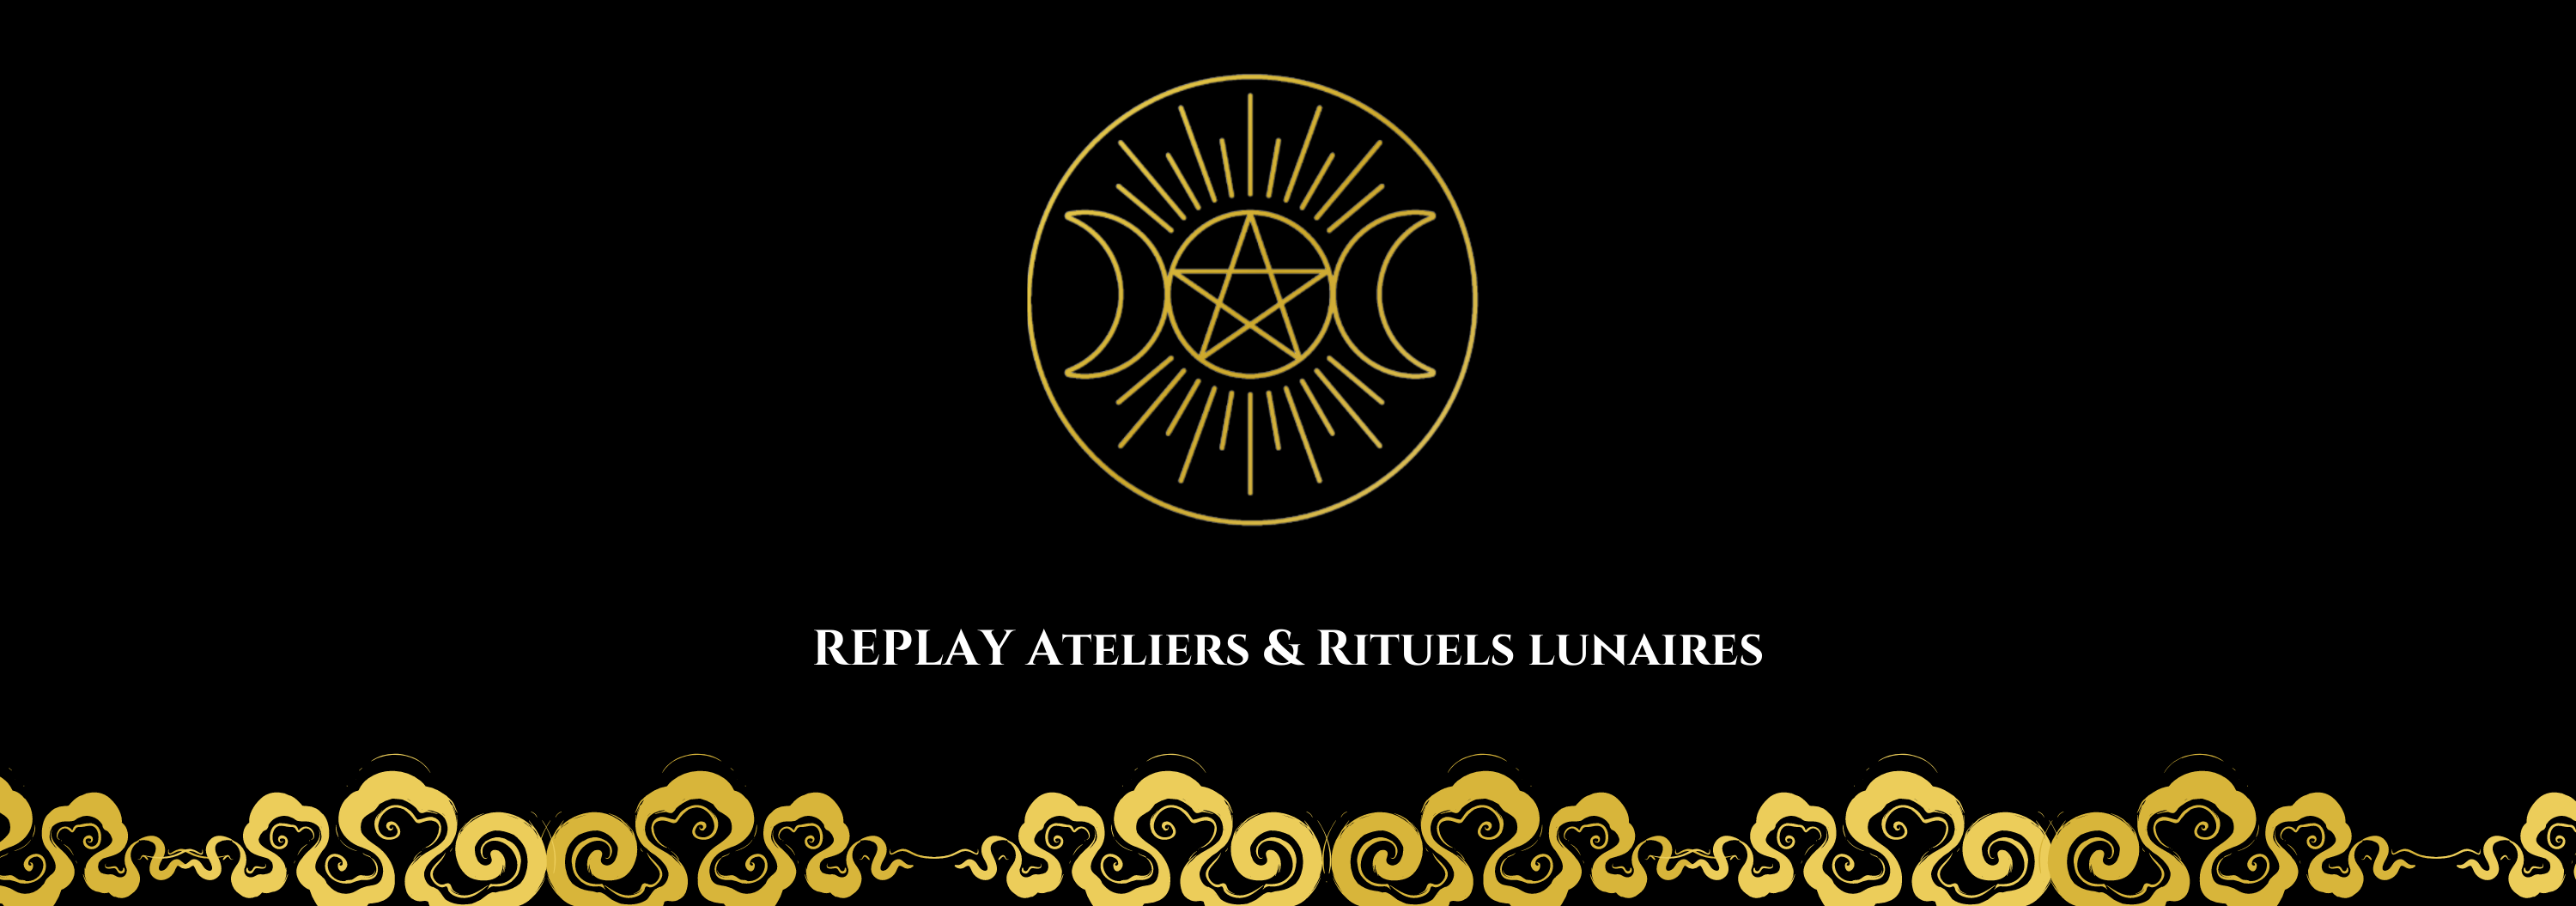 REPLAY ATELIERS & RITUELS LUNAIRES